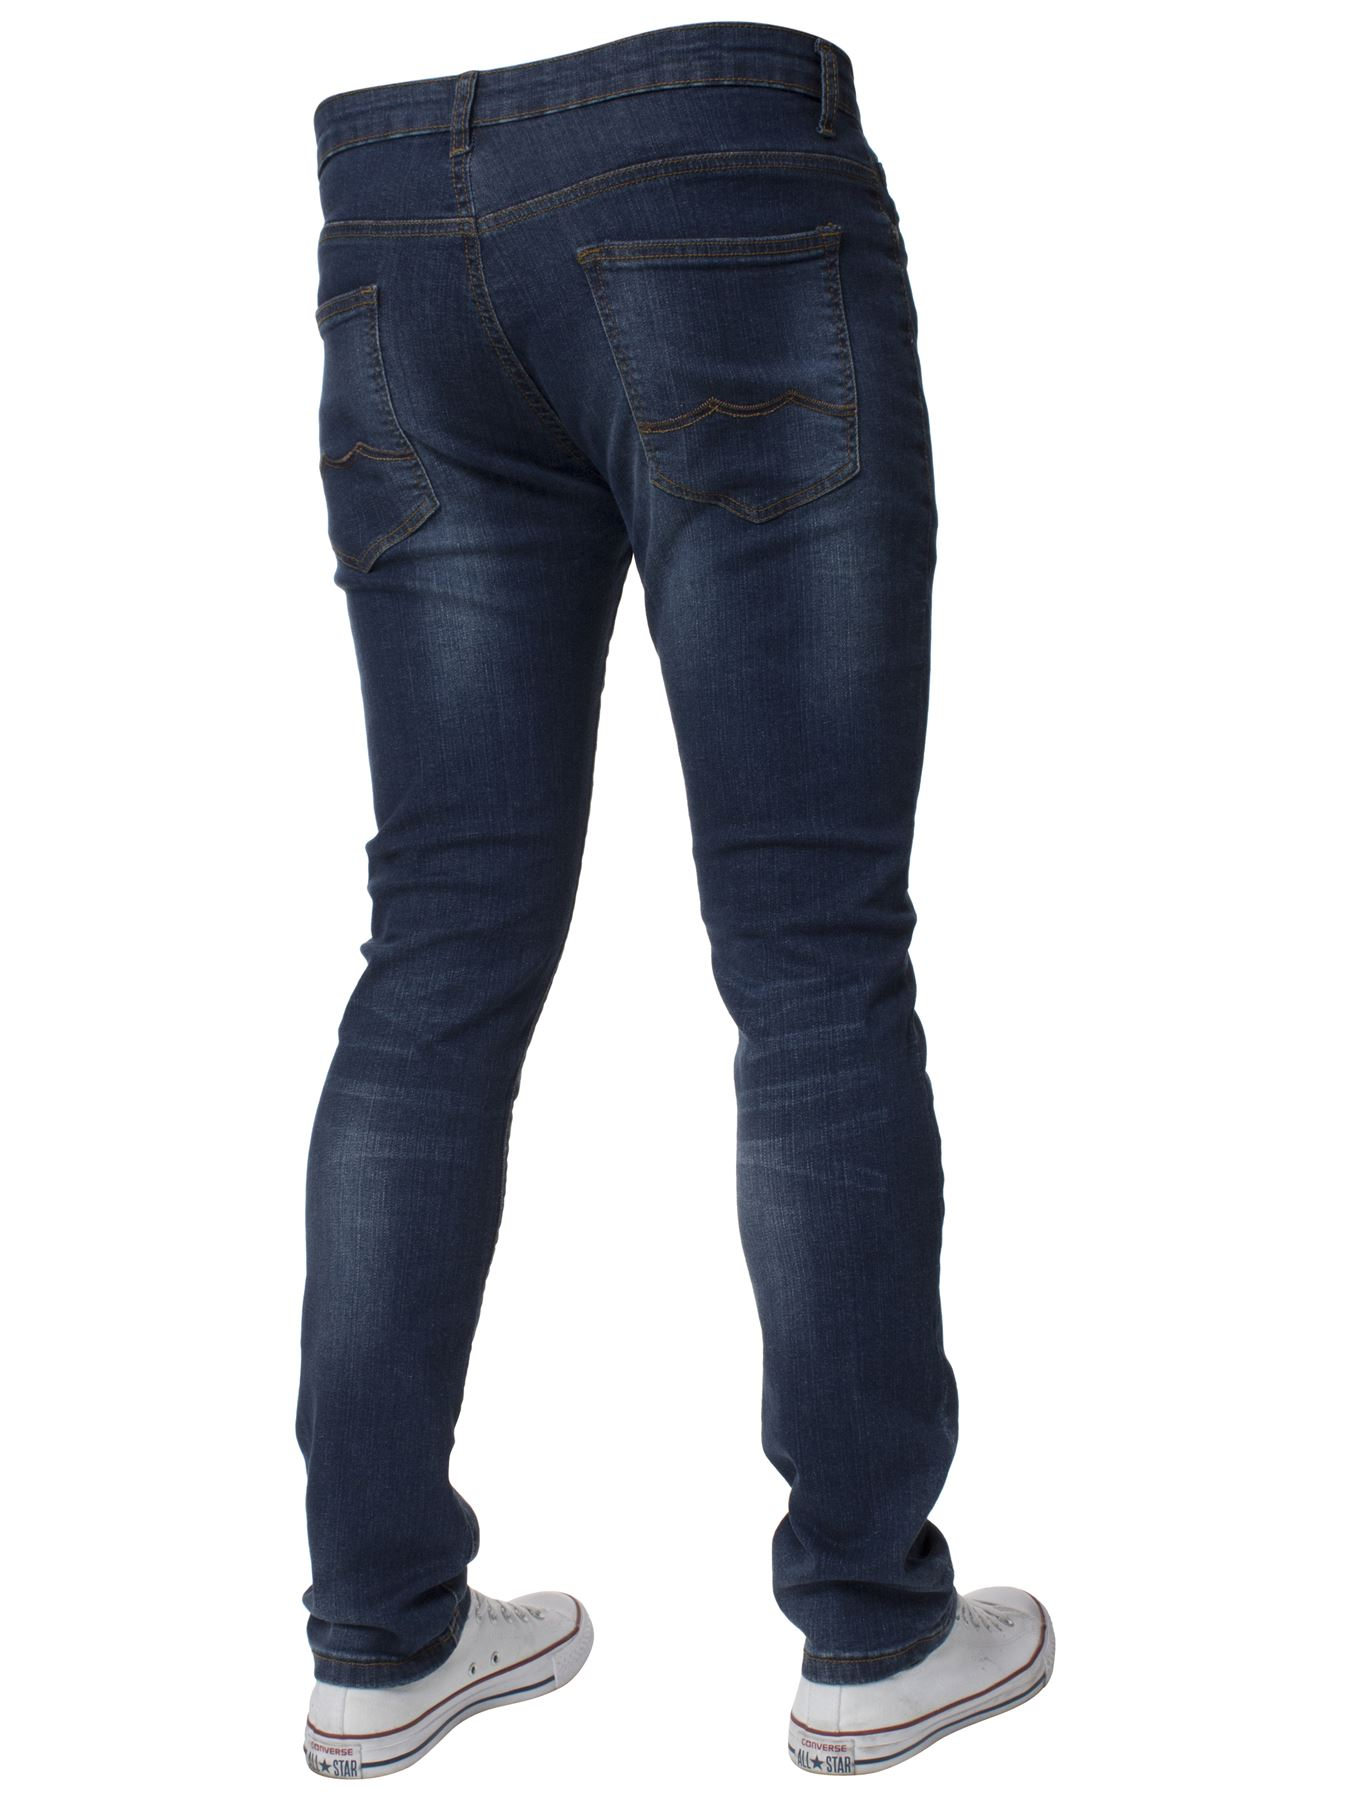 Kruze-Mens-Skinny-Stretch-Jeans-Slim-Fit-Flex-Denim-Trousers-Pants-All-Waists